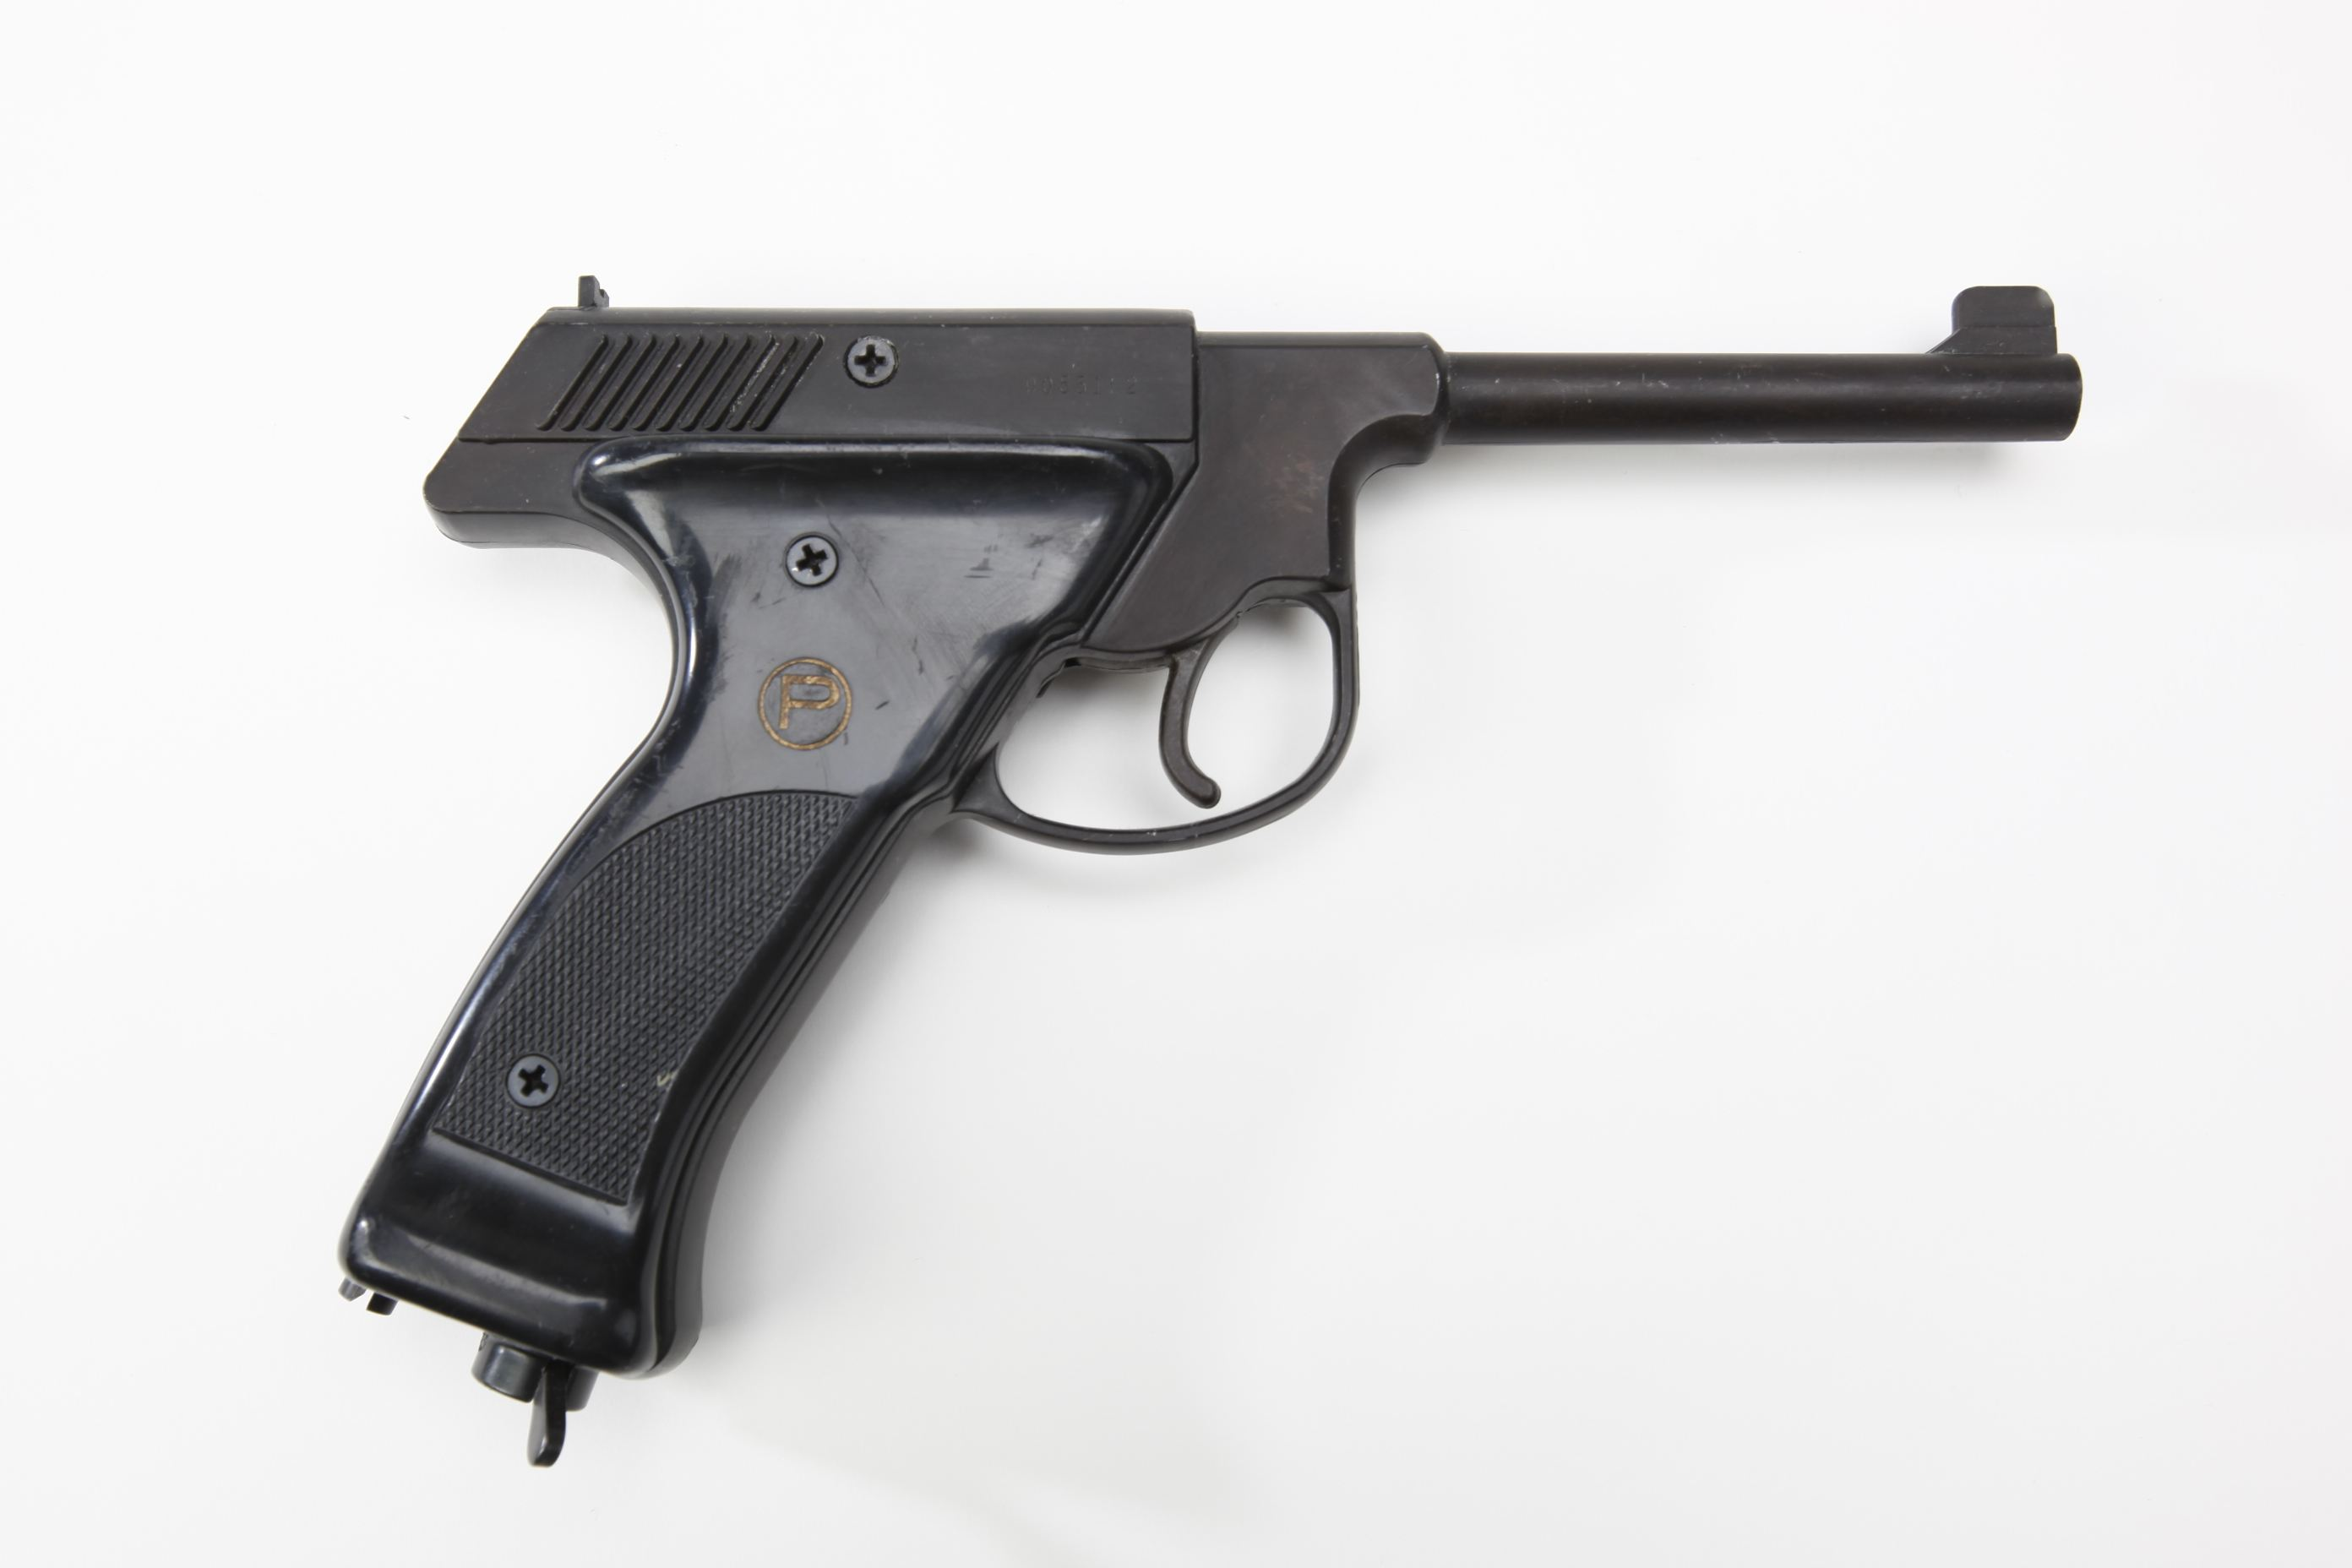 Healthways Model 175 Plainsman CO2 Pistol